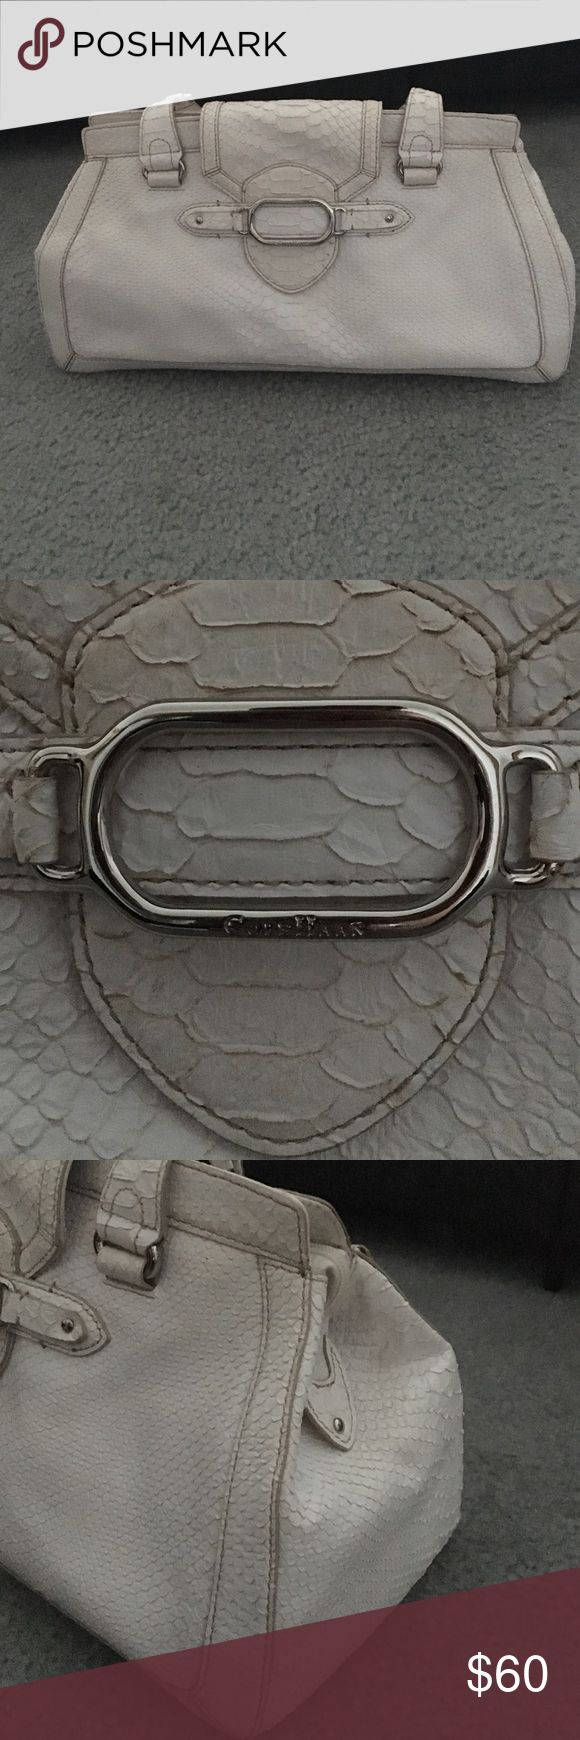 Cole Haan purse Purse from Cole Haan. Good condition. Cole Haan Bags